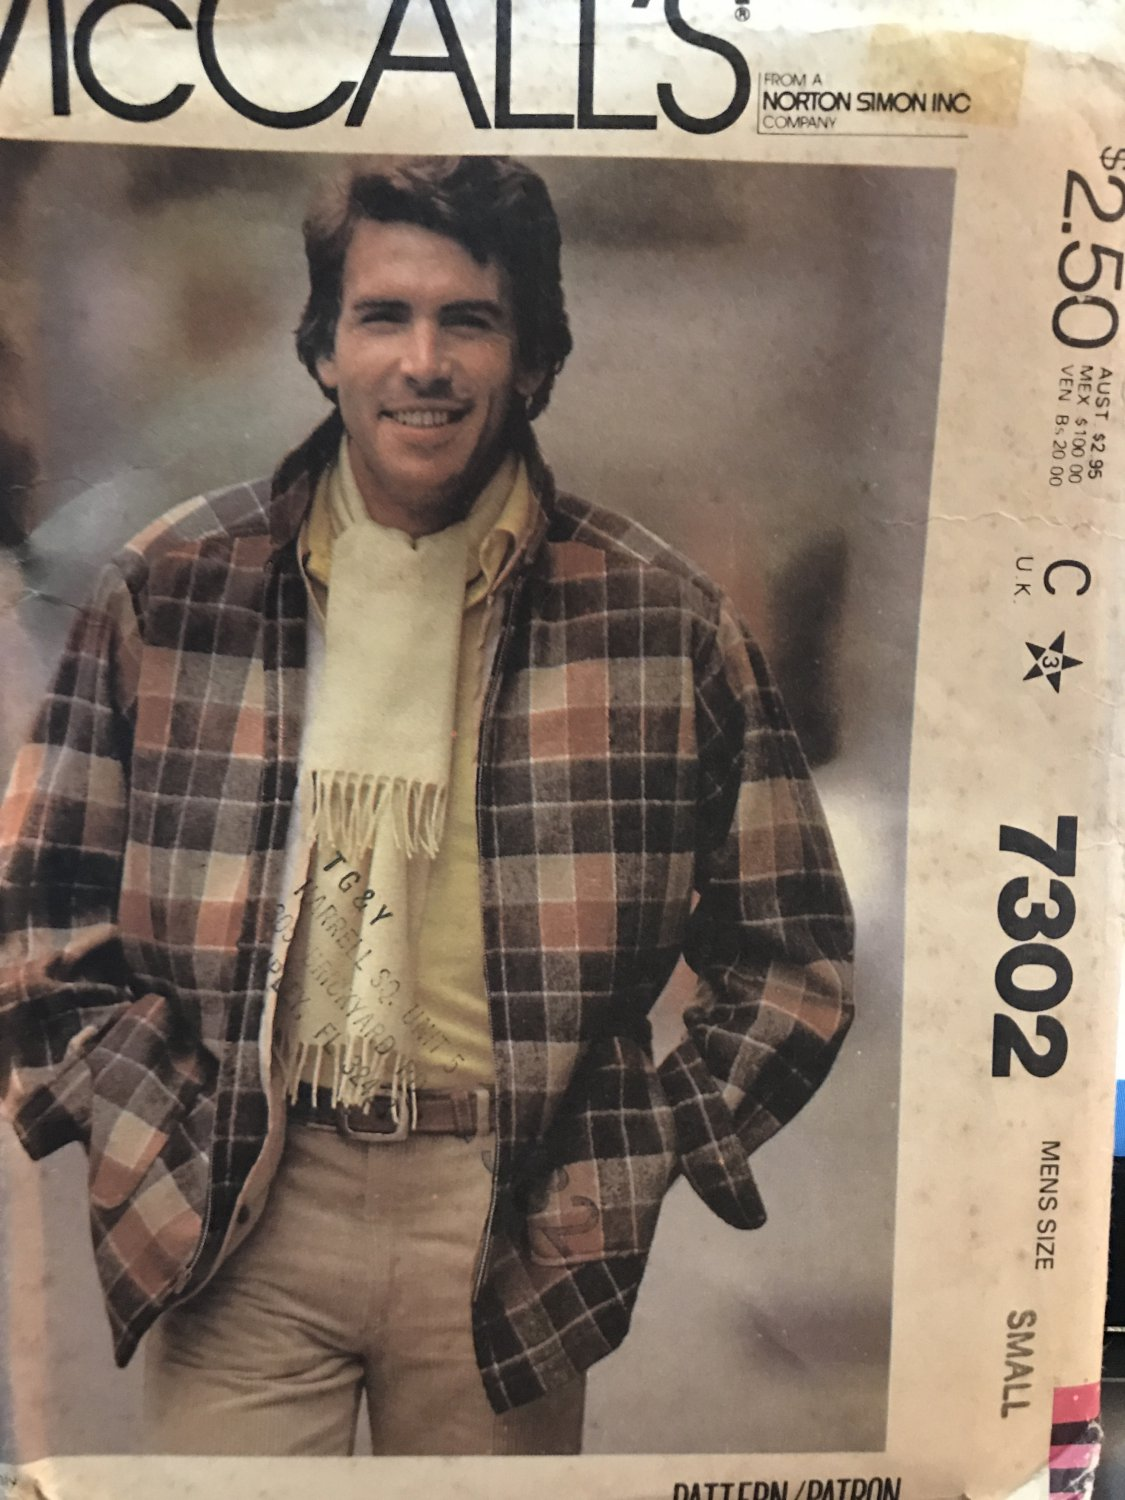 McCall's 7302 Men's Jacket Bomber Style Sewing Pattern size Small 34 - 36 chest